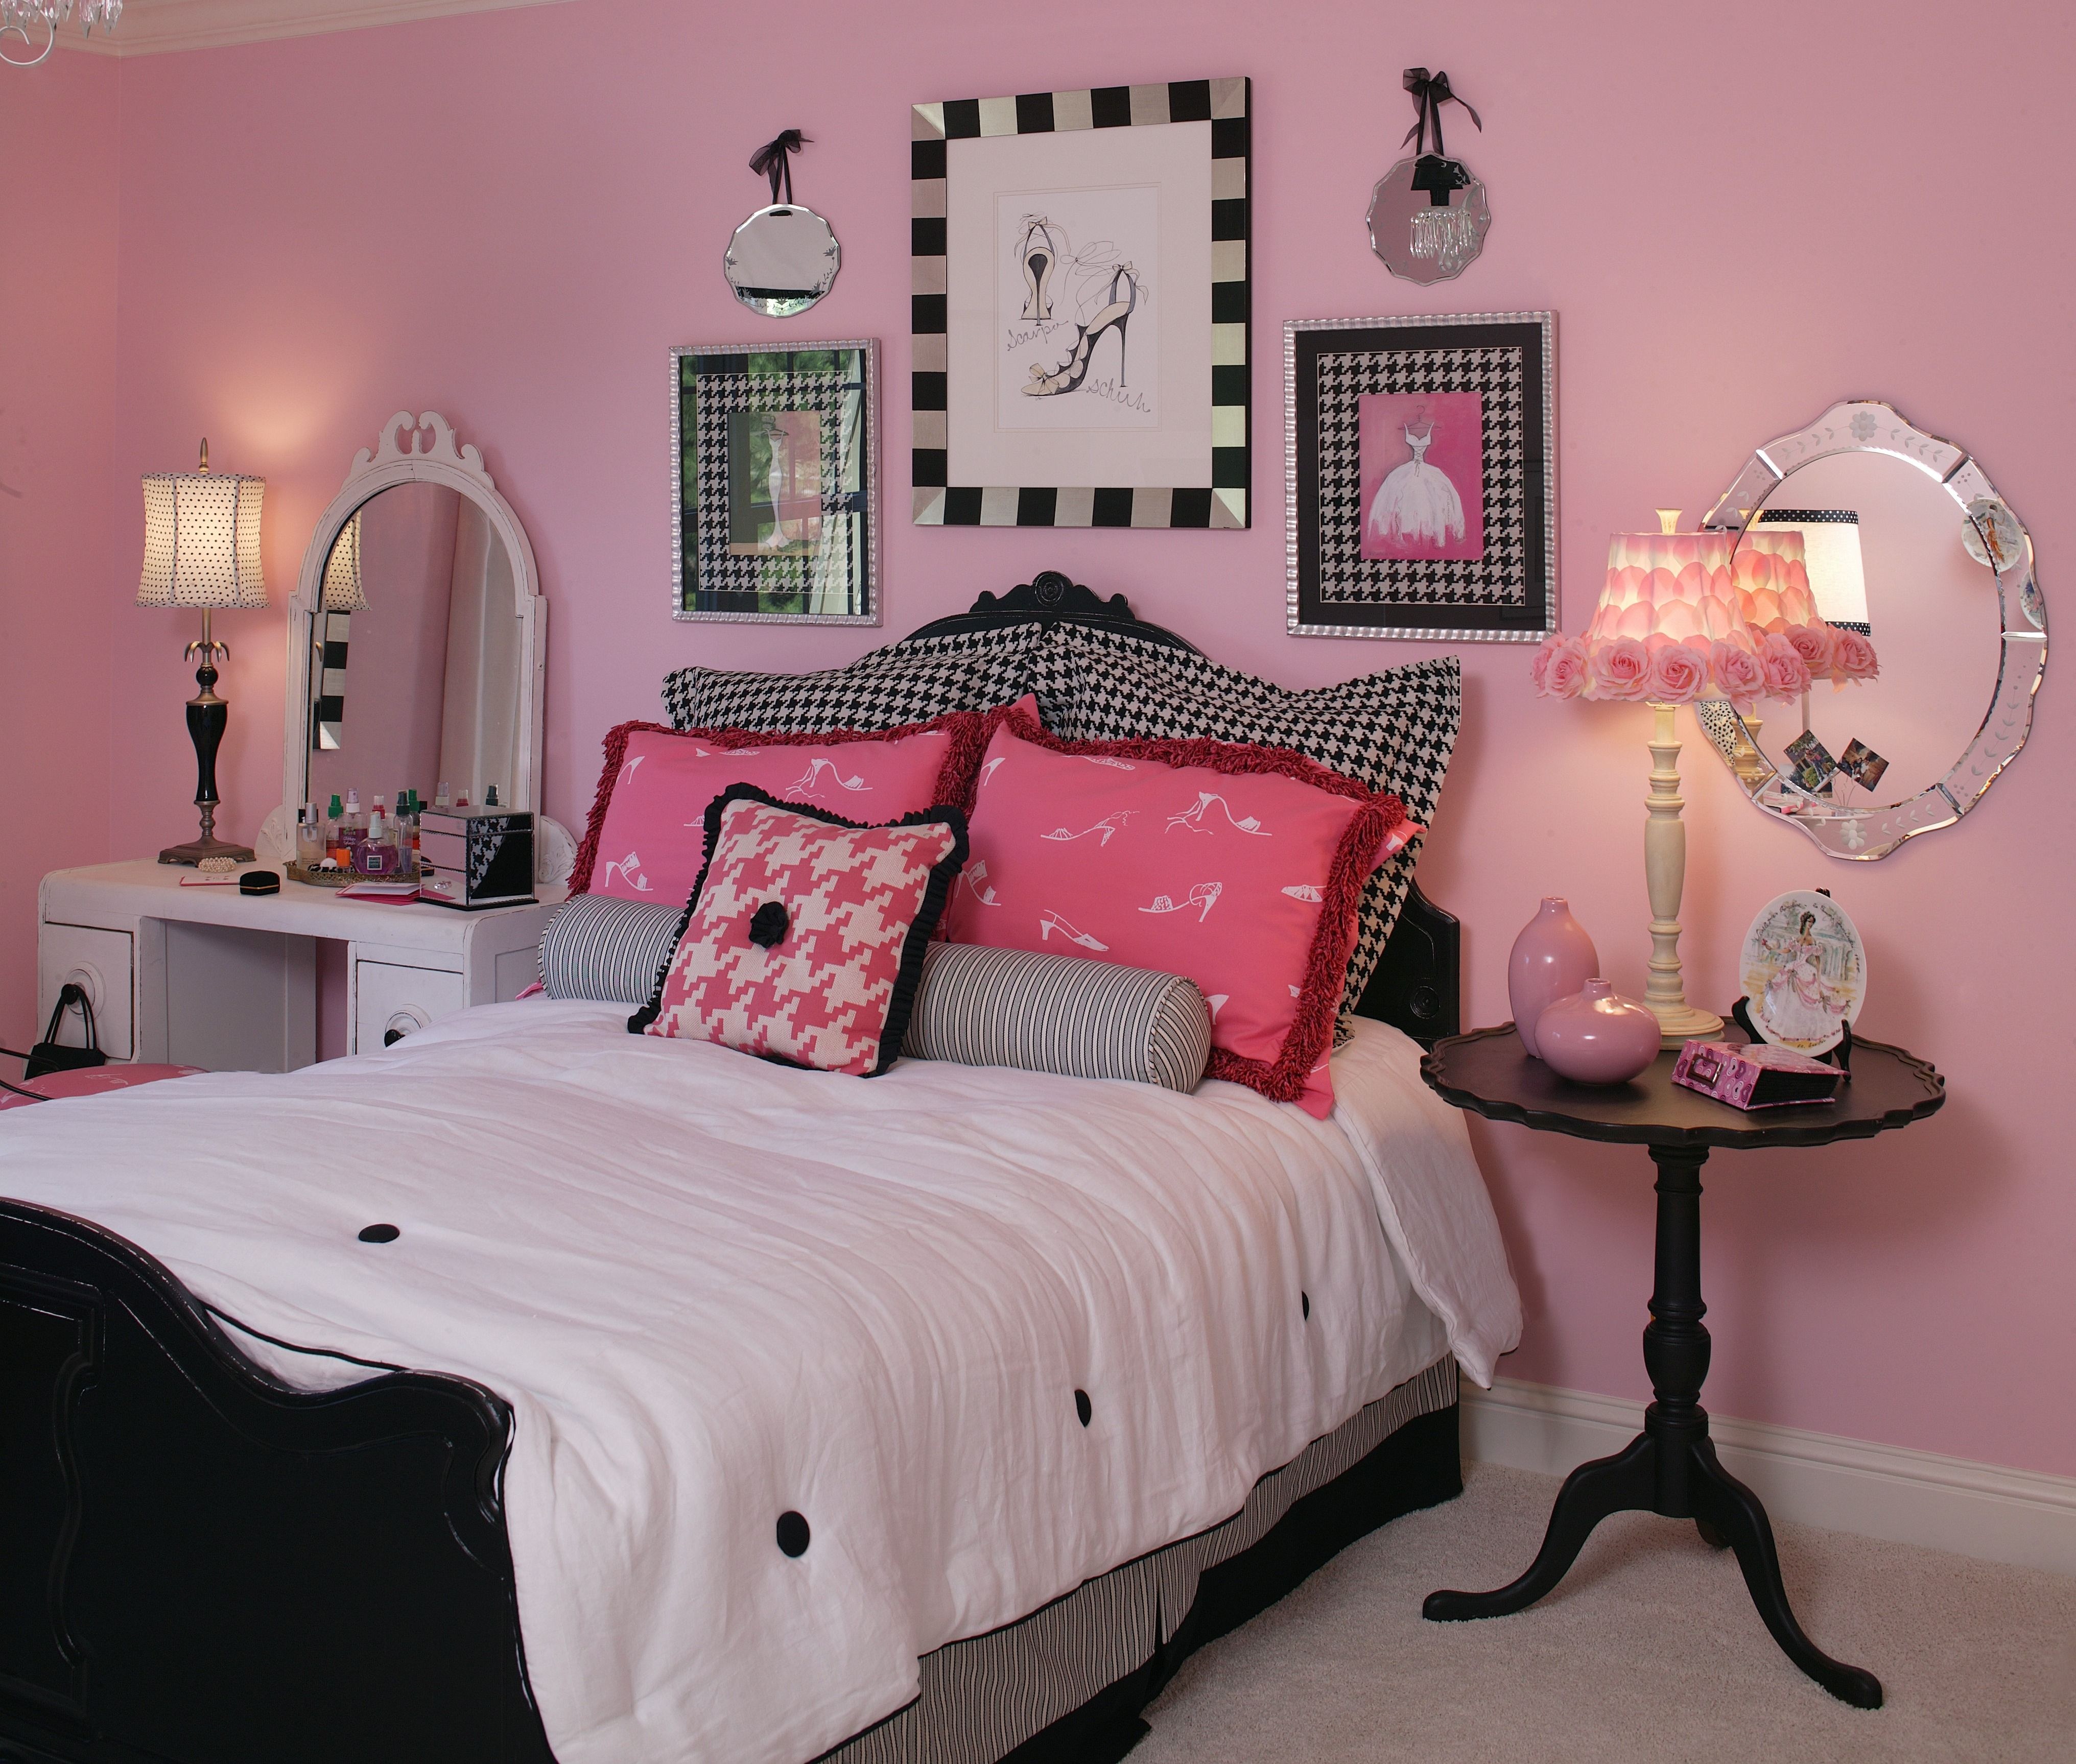 What 12-year-old girl would not like to have this bedroom ...